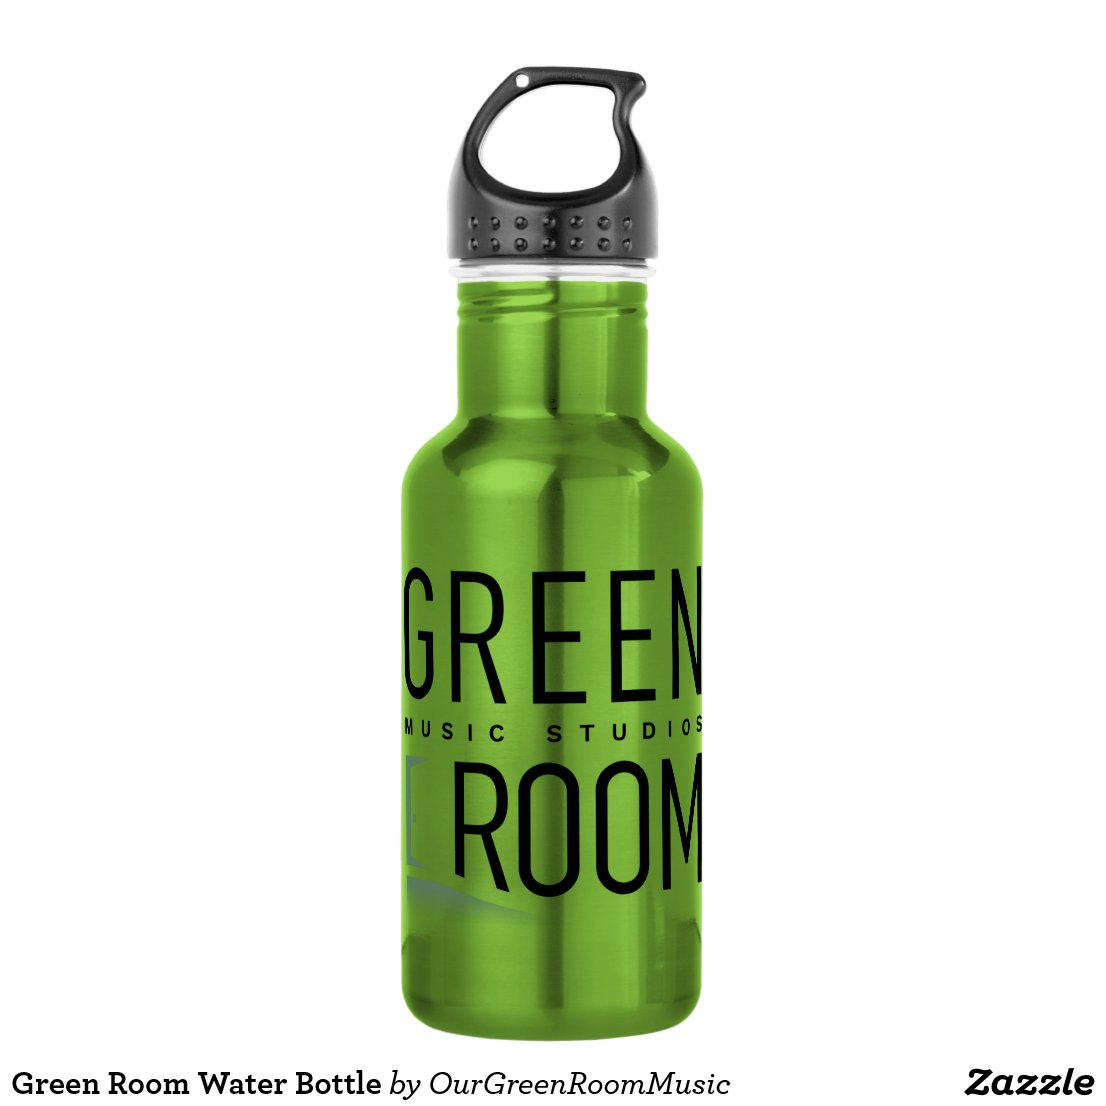 Green Room Water Bottle